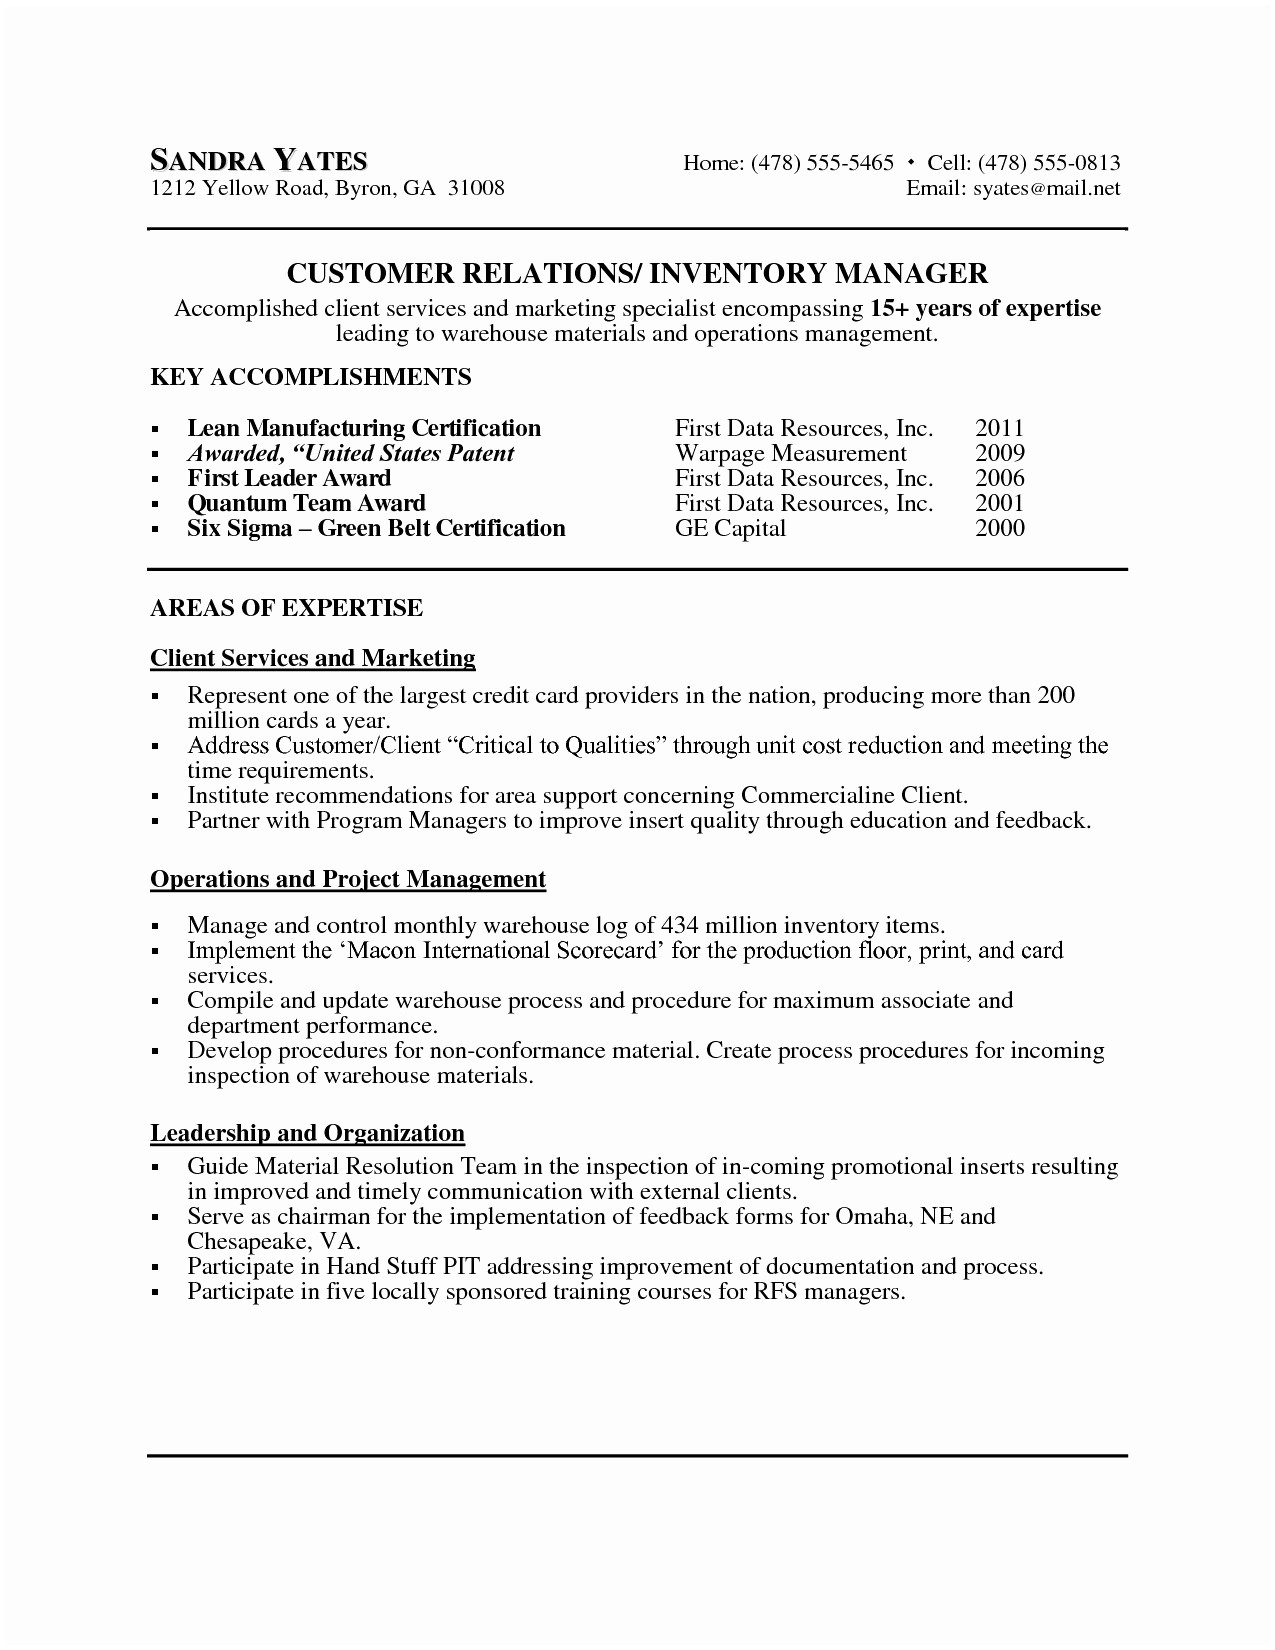 Operations Manager Cover Letter Template Collection | Letter Templates